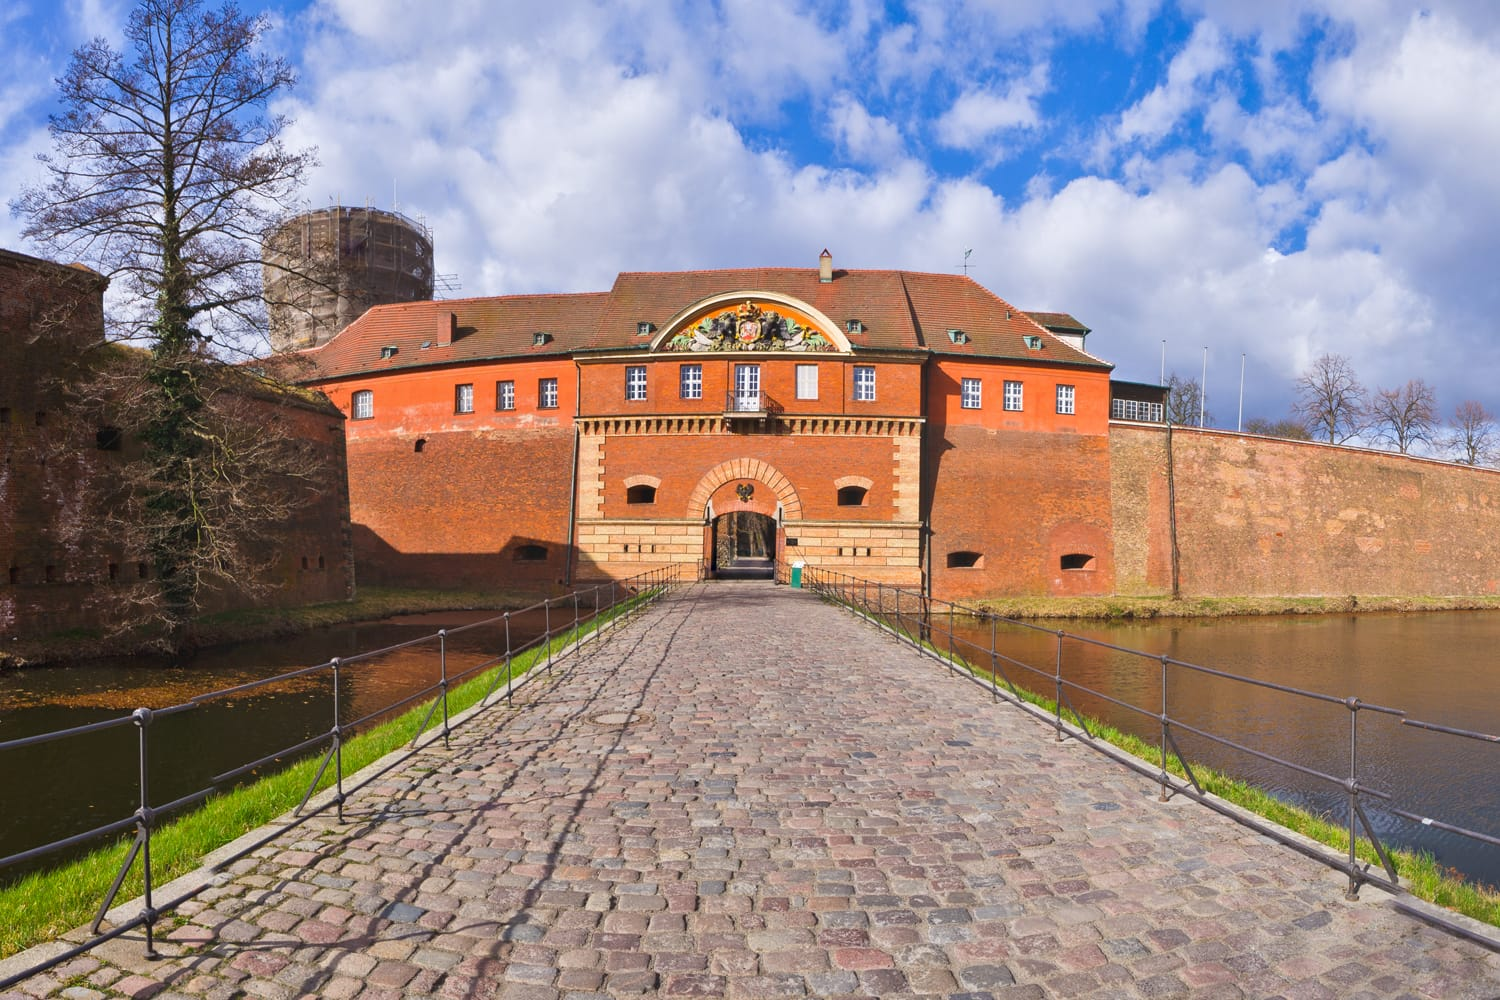 Citadel in Spandau, Berlin, Germany